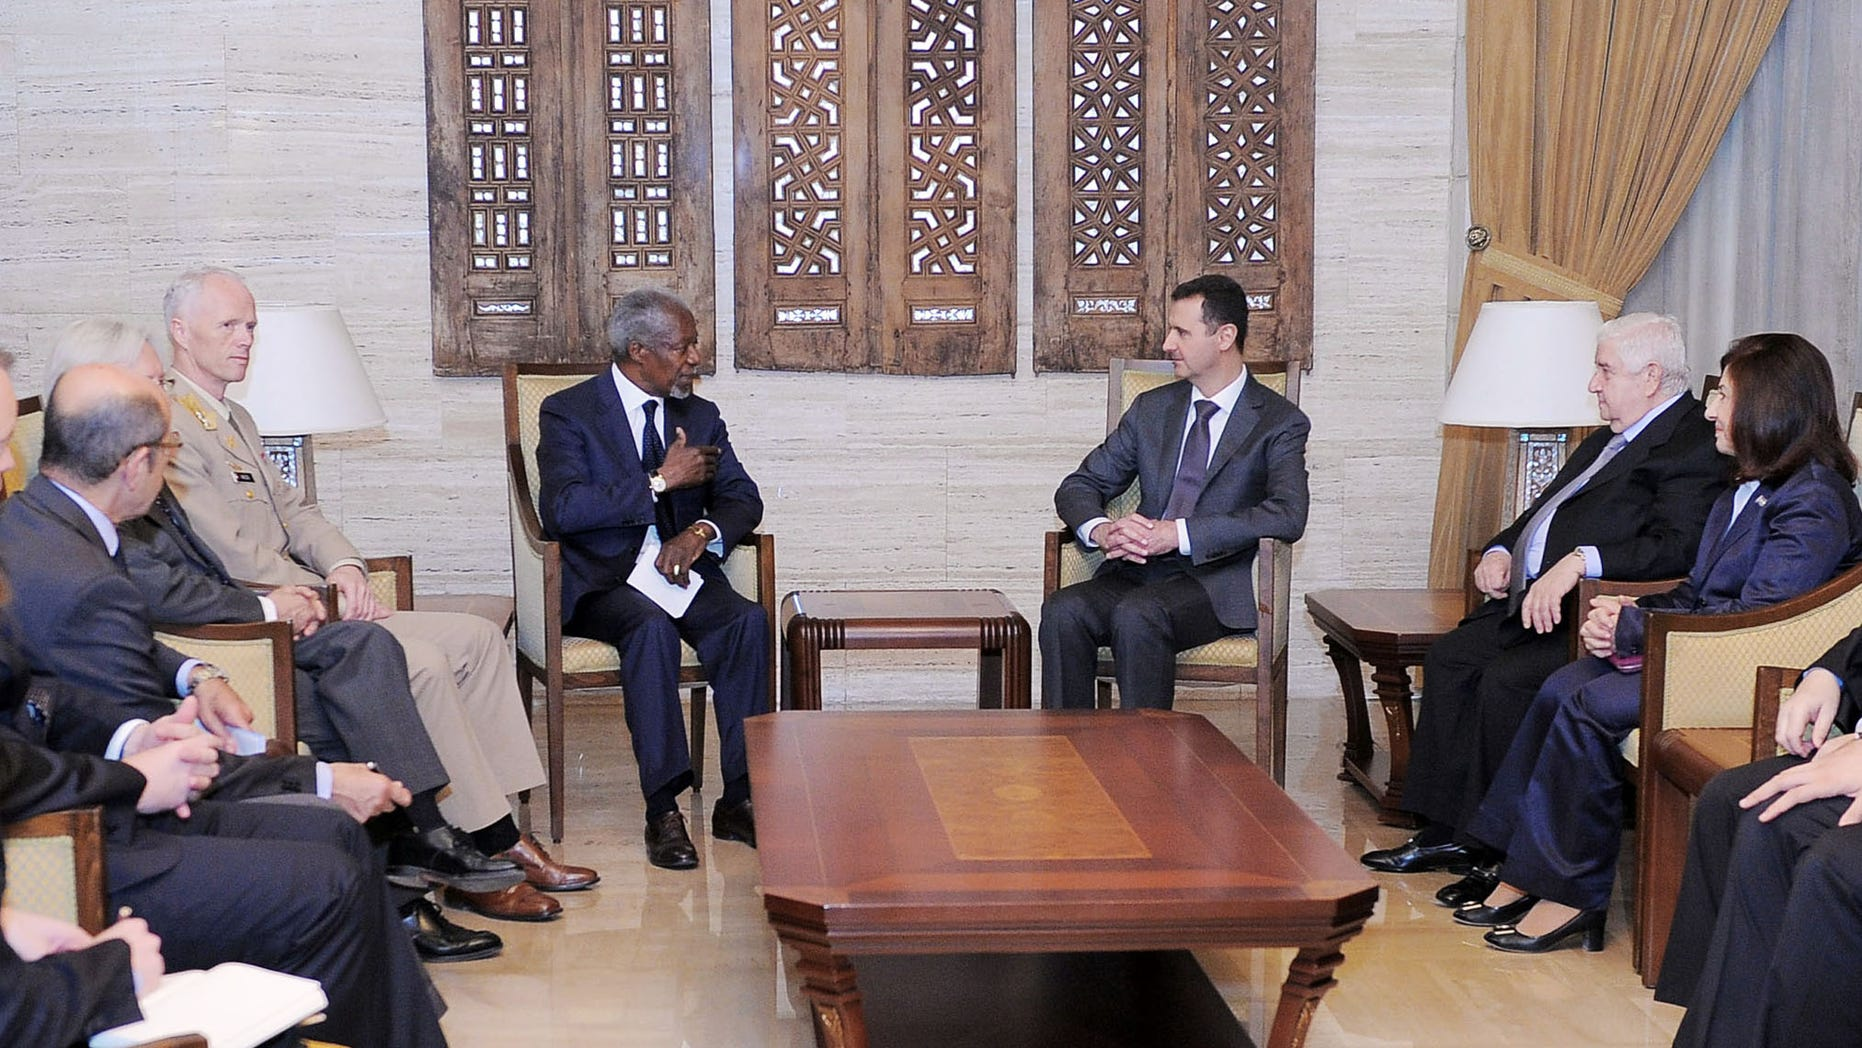 May 29, 2012: In this photo released by the Syrian official news agency SANA shows UN-Arab League Joint Special Envoy for Syria (JSE) Kofi Annan, fourth left, Norwegian Maj. Gen. Robert Mood, head of the U.N. observer team in Syria, third left, Syrian President Bashar Assad, third right, and Syrian Foreign Minister Walid Moallem, second right, attend a meeting in Damascus, Syria. International envoy Kofi Annan met Syrian President Bashar Assad on Tuesday following a massacre last week that killed more than 100 people and sparked widespread international condemnation against Damascus.